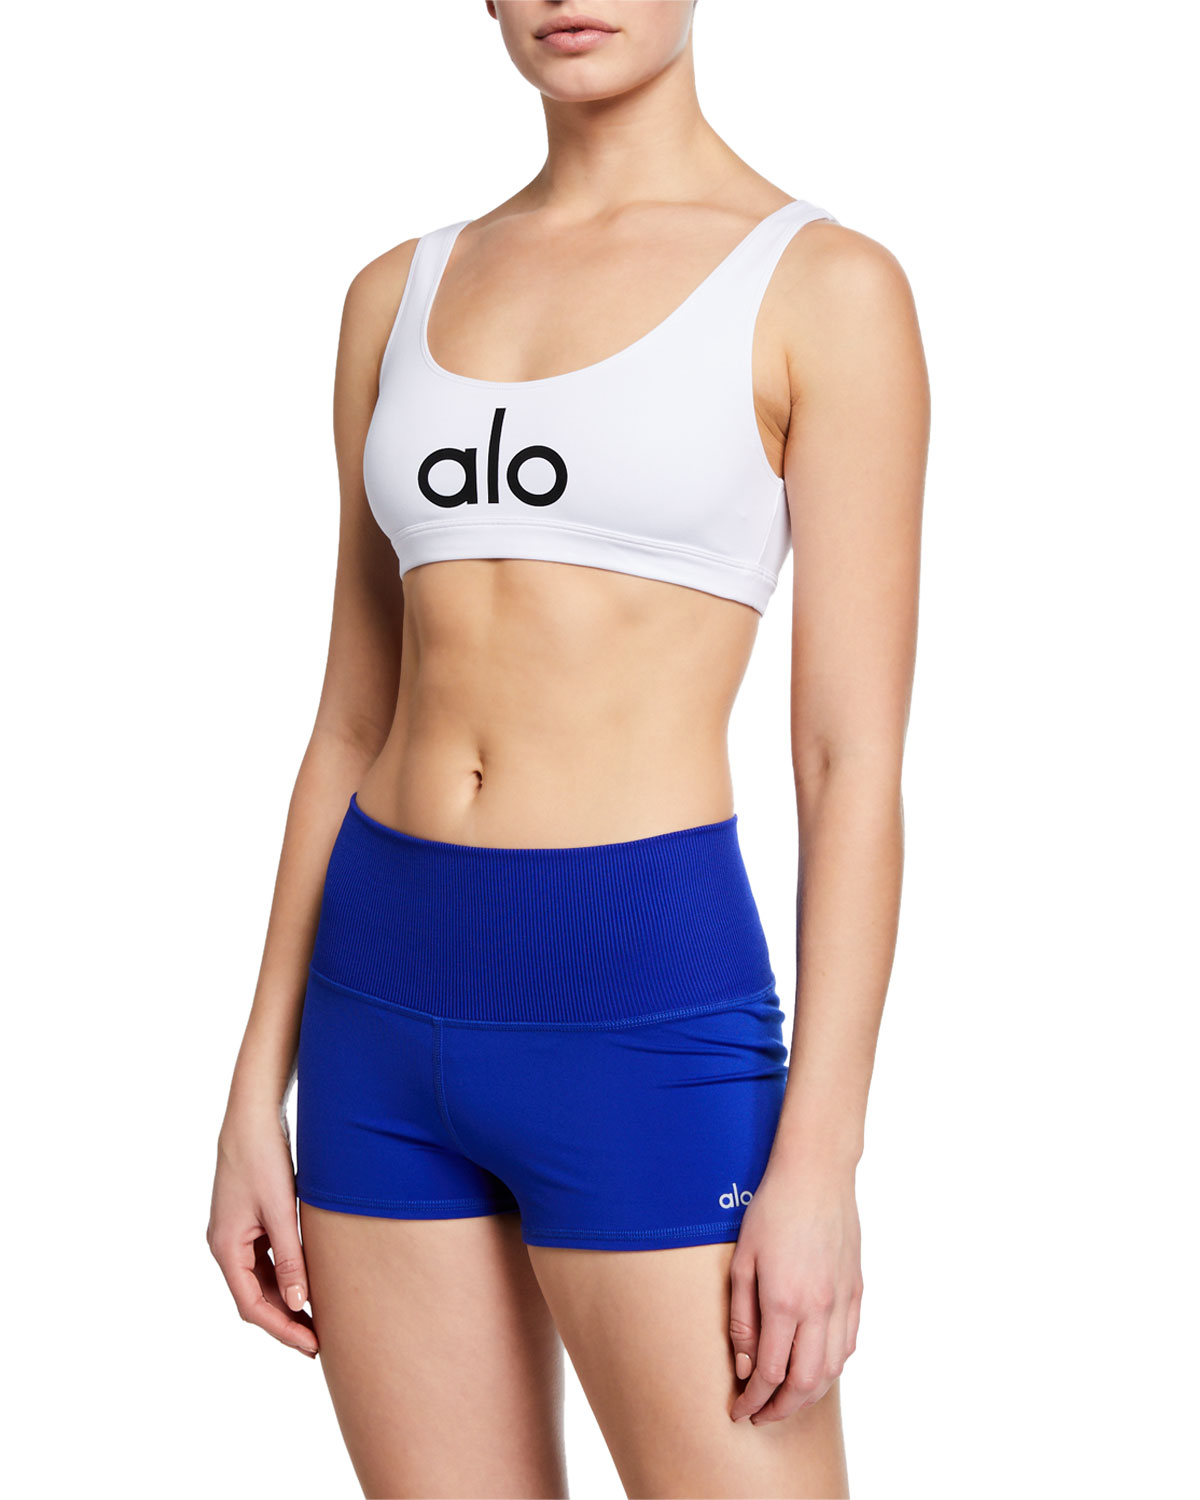 Alo Yoga Tops AMBIENT LOGO SPORTS BRA